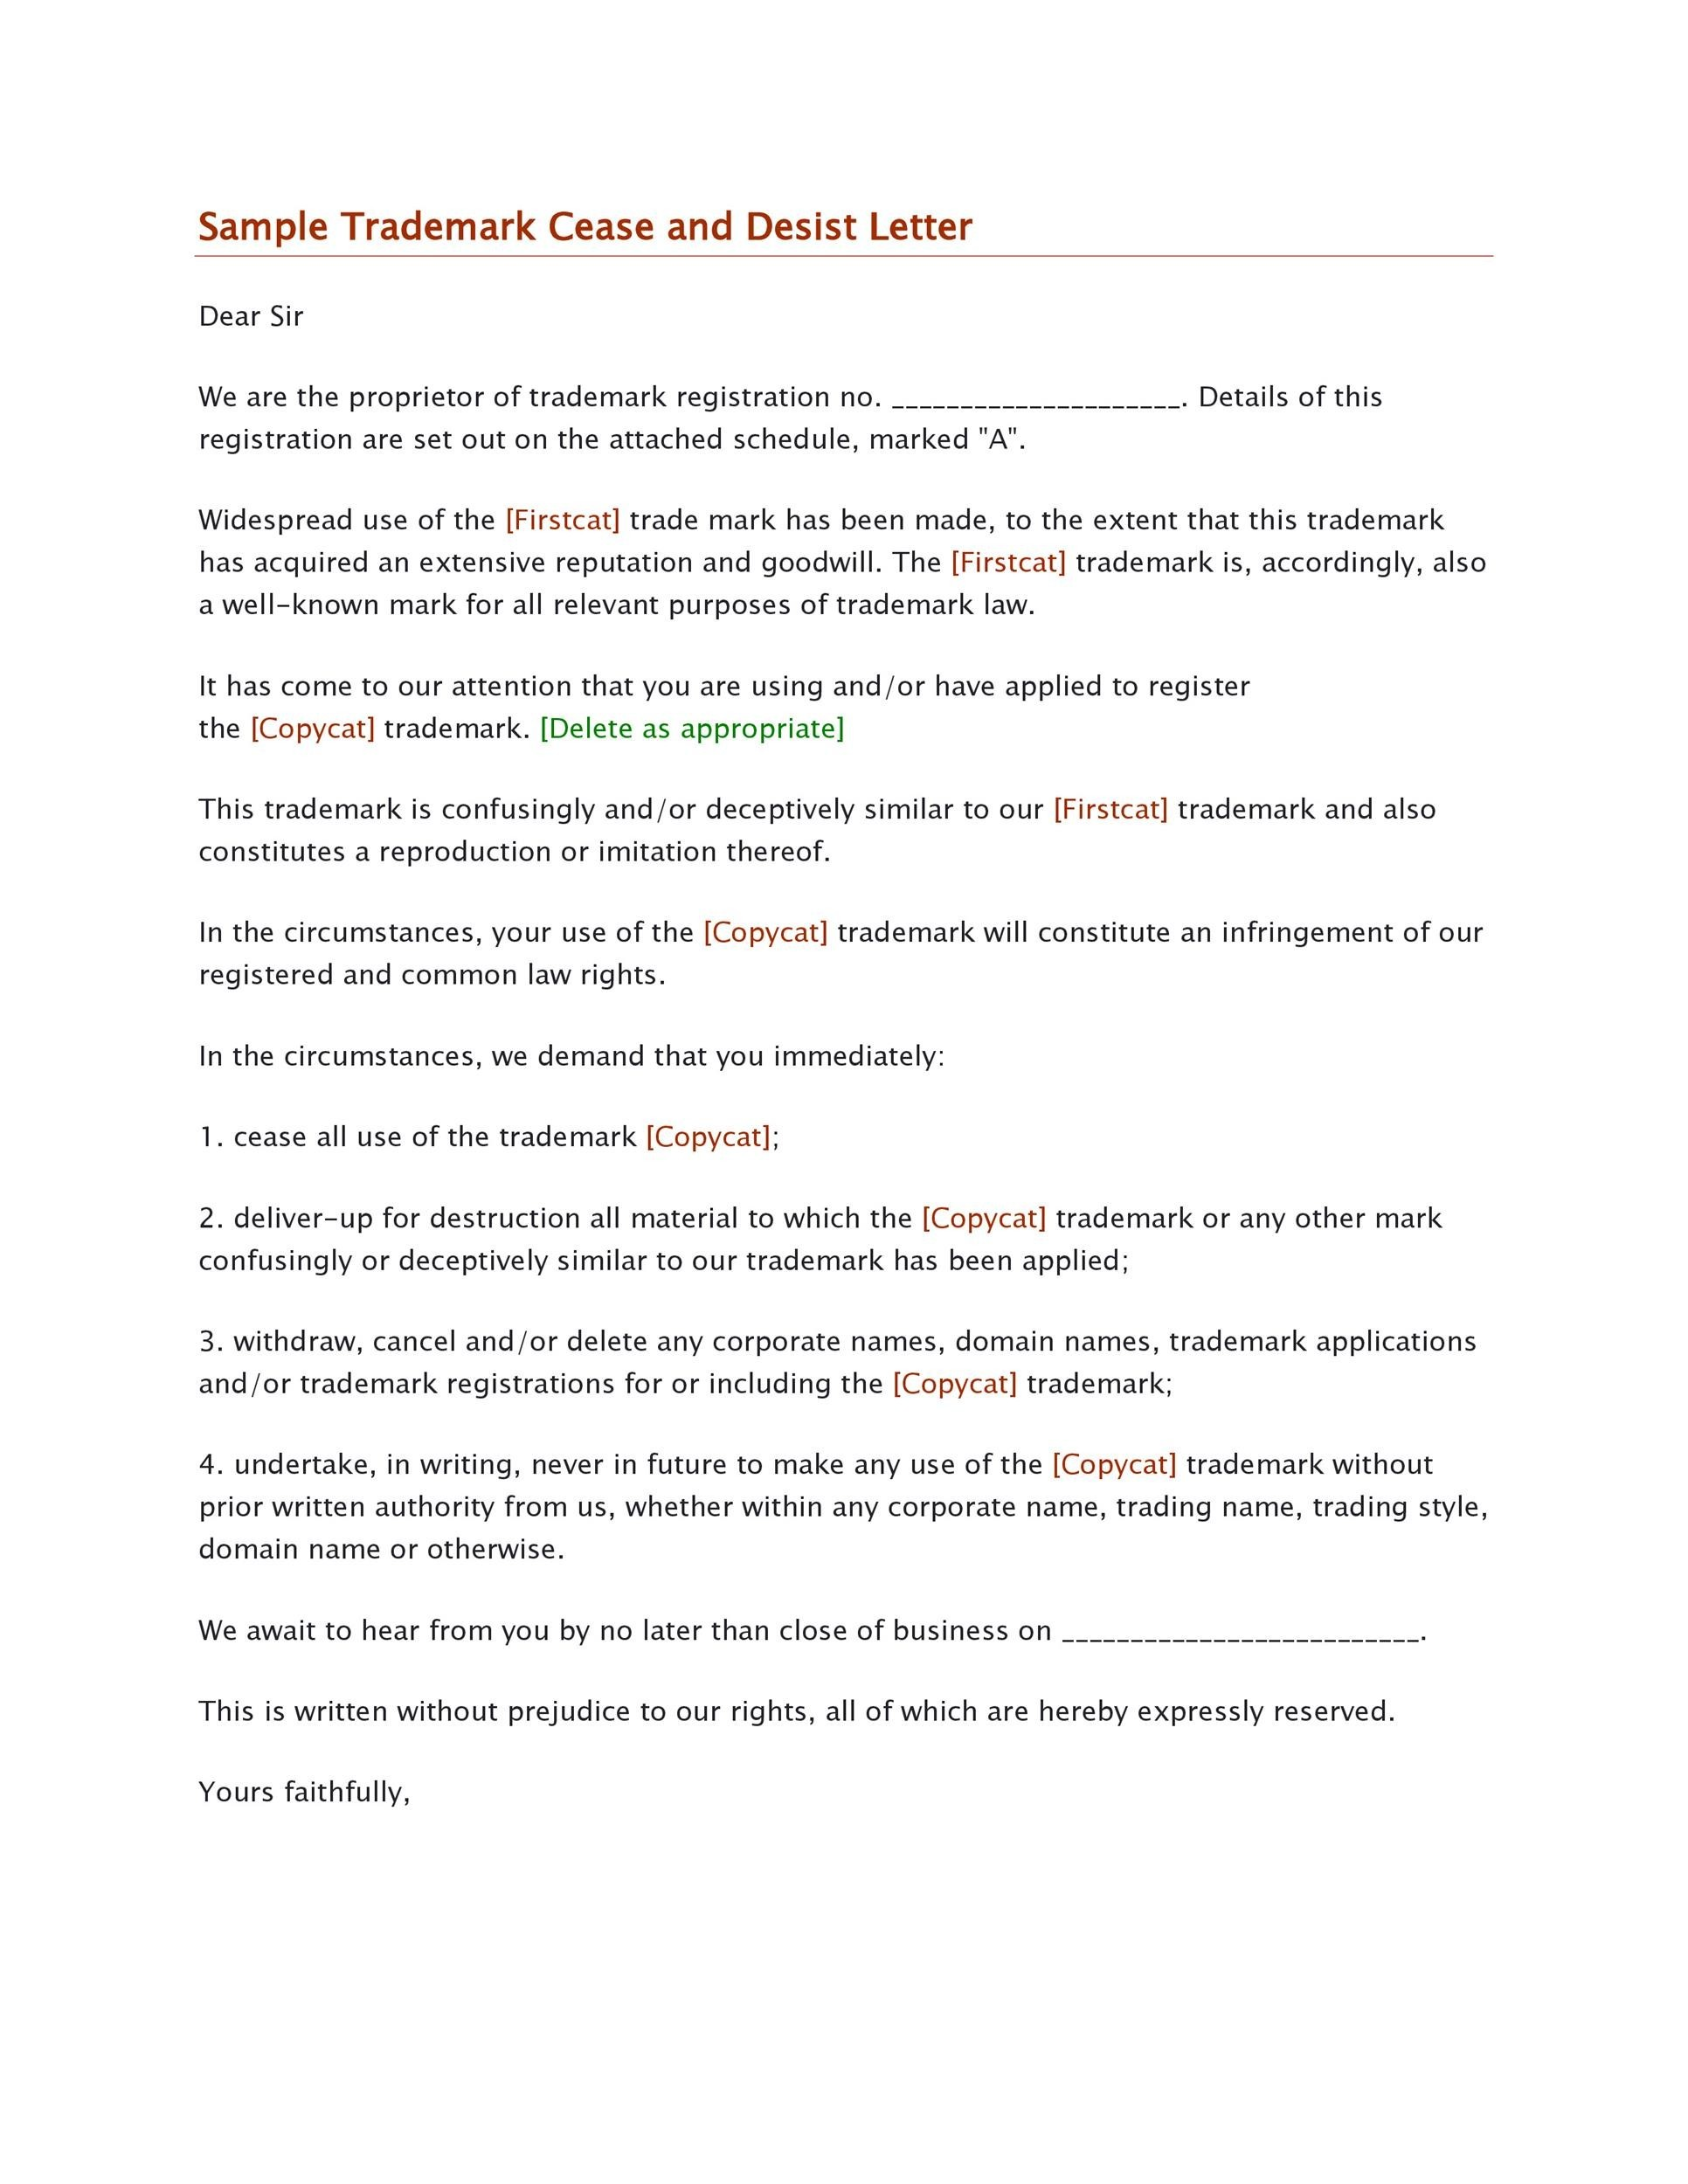 30 Cease and Desist Letter Templates FREE Template Lab – Cease and Desist Template Trademark